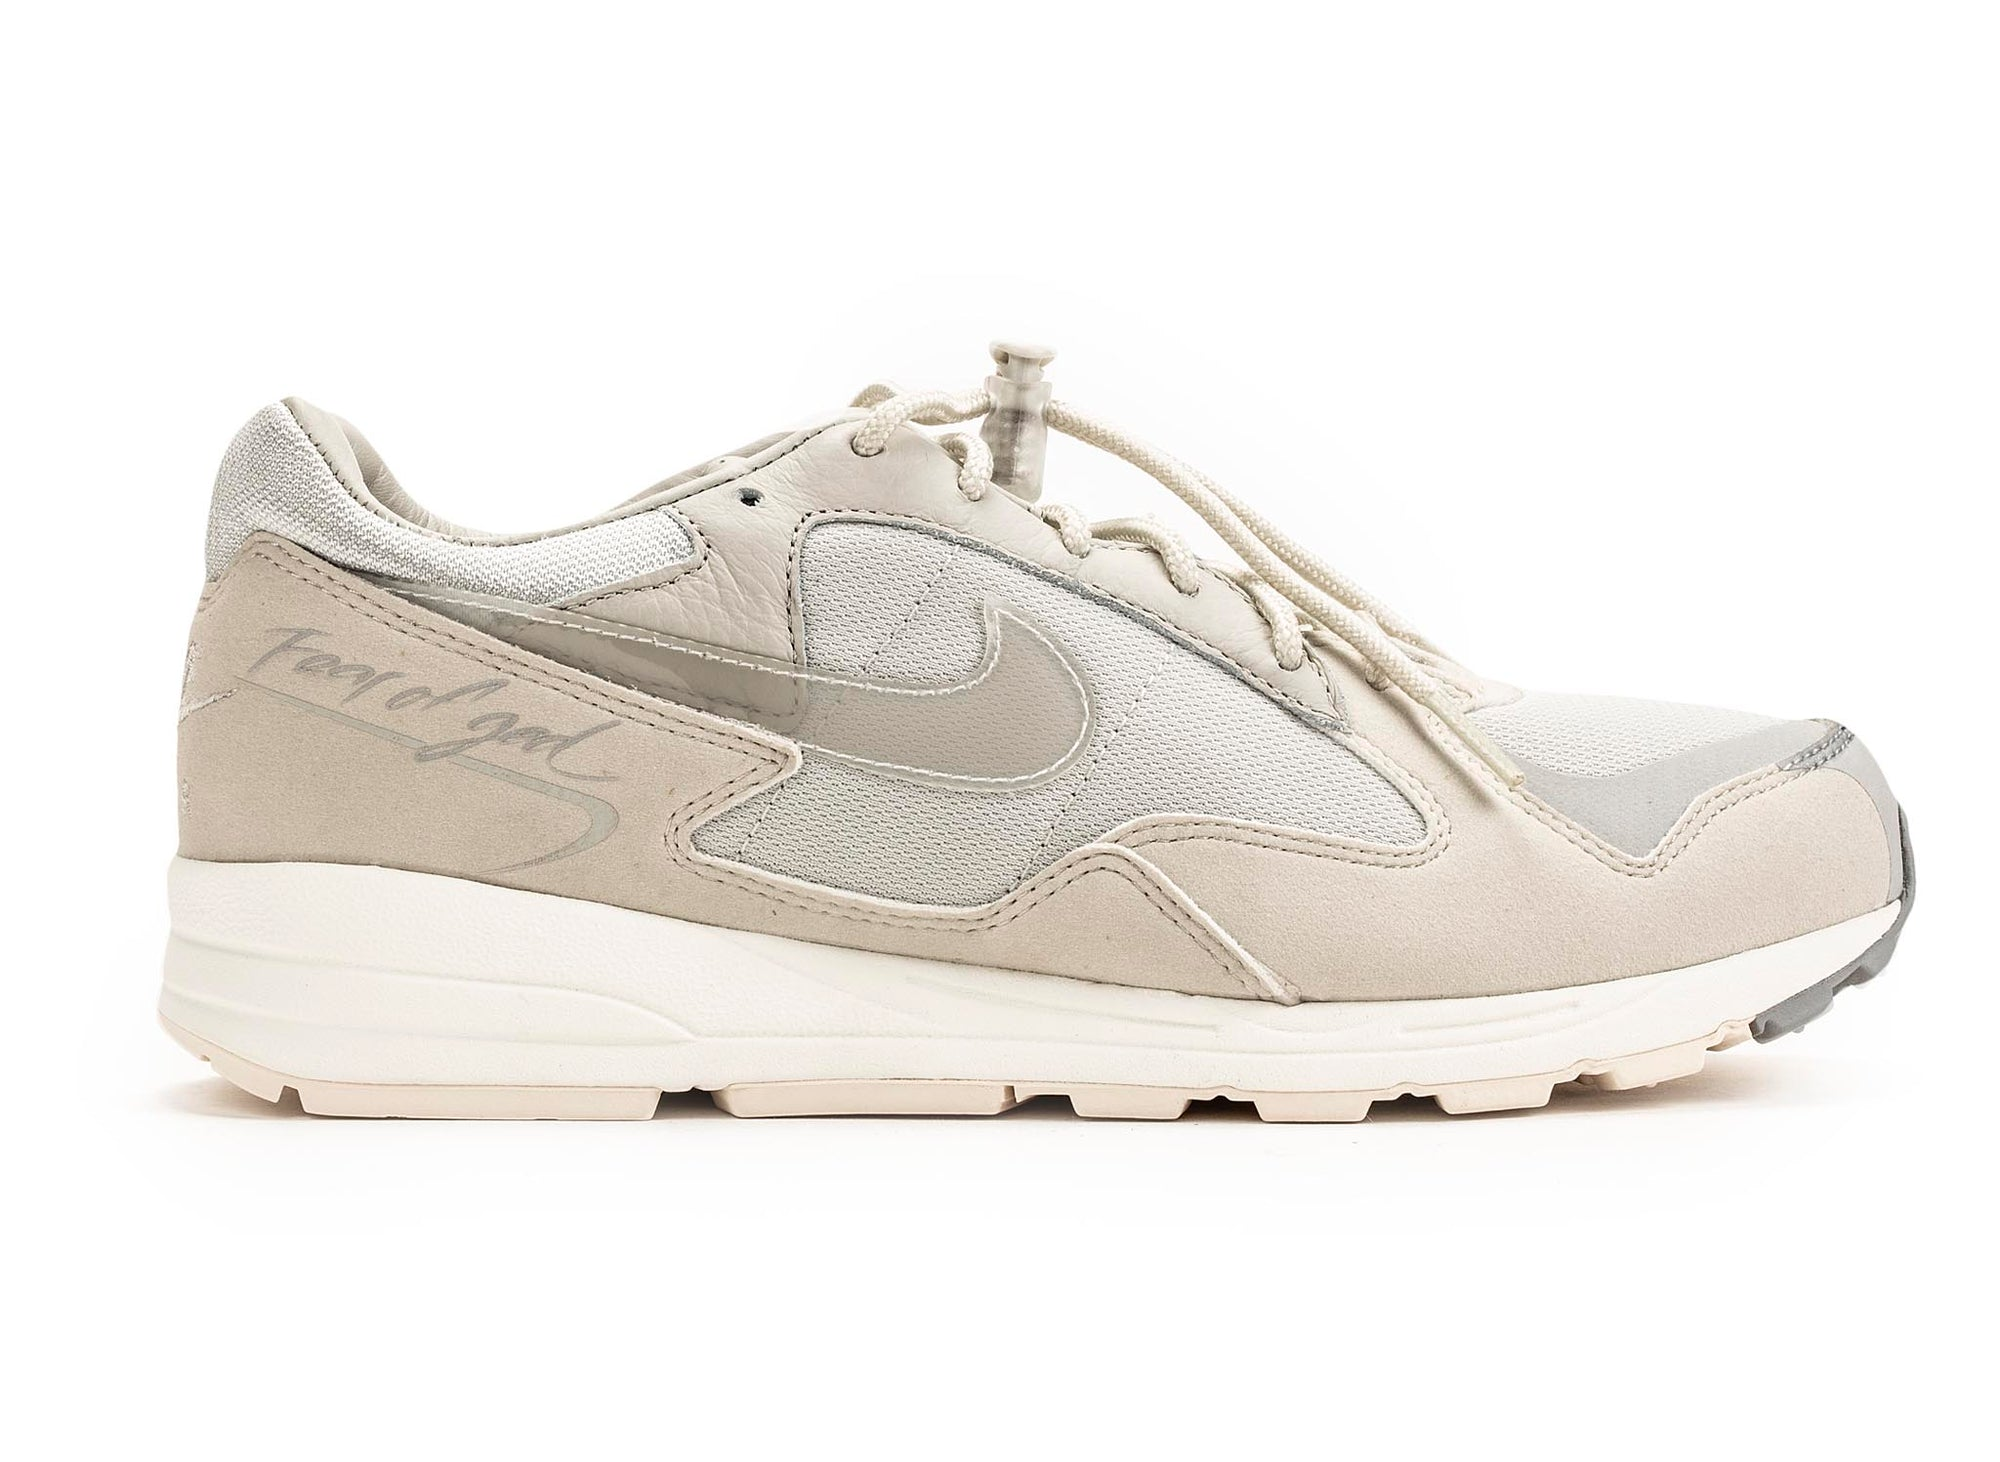 Fear of God x Nike Air Skylon II 'Light Bone'